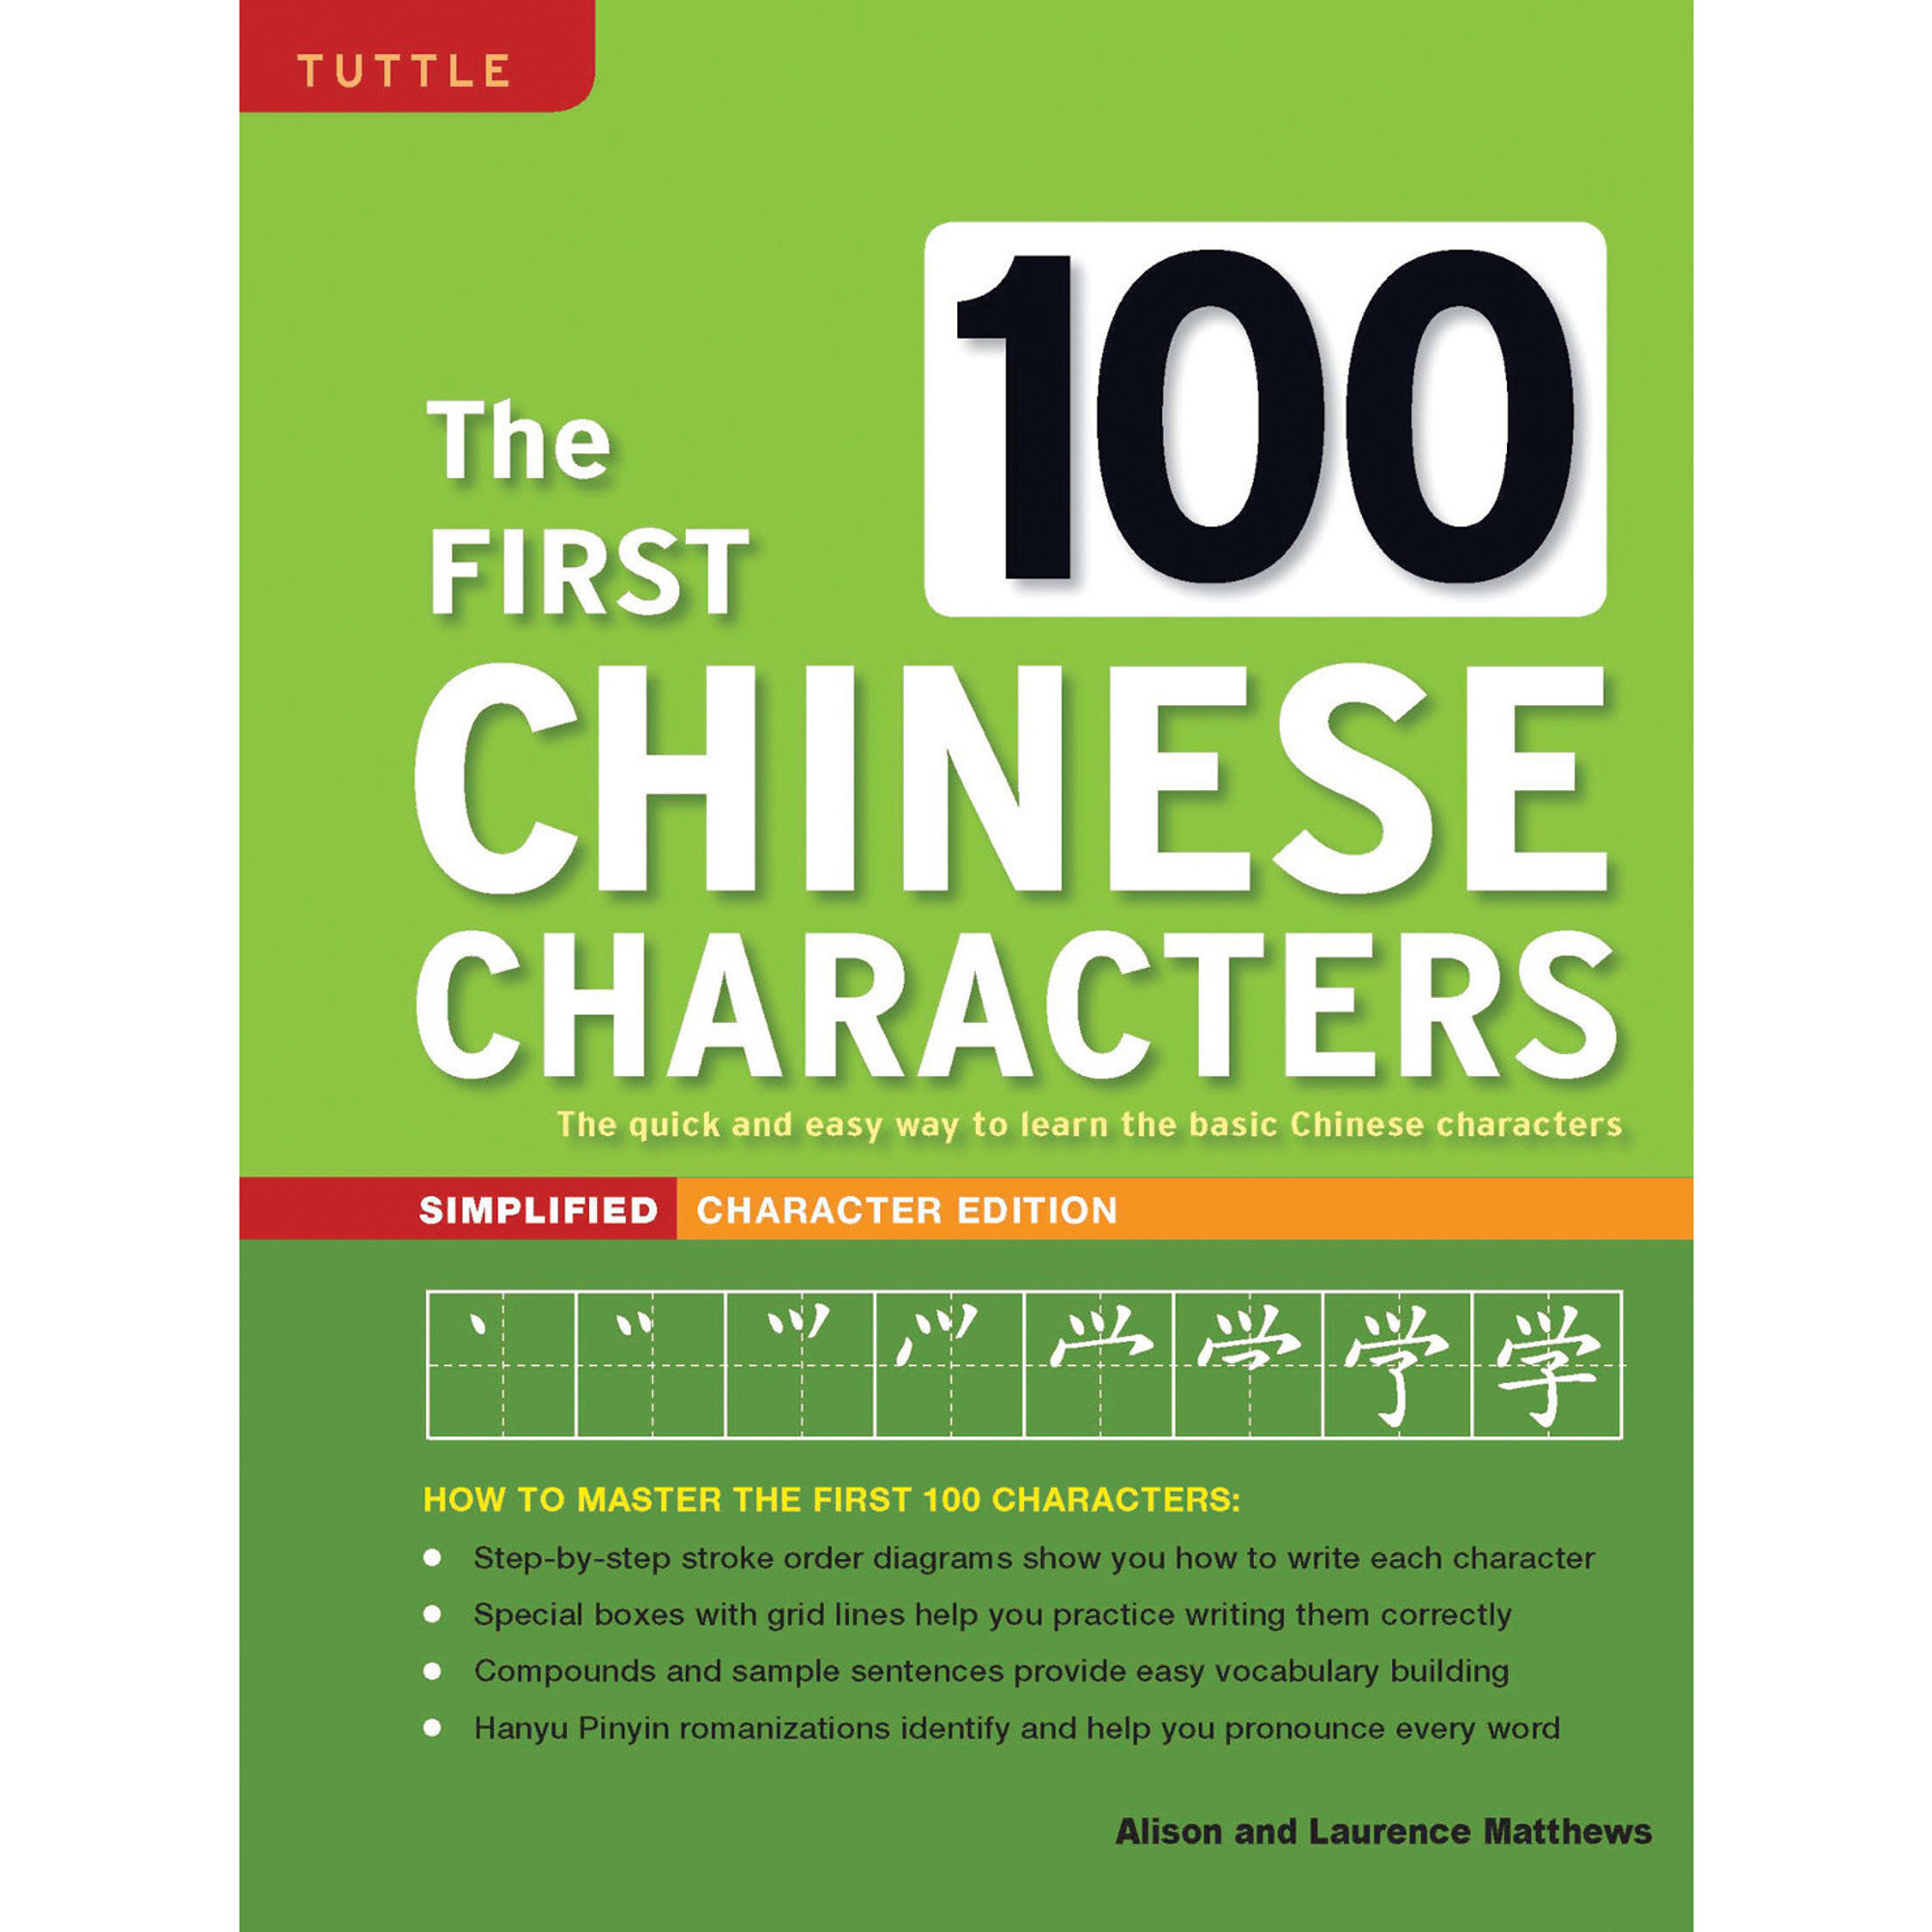 The First 100 Chinese Characters: Simplified Character Edition  (9780804849920)